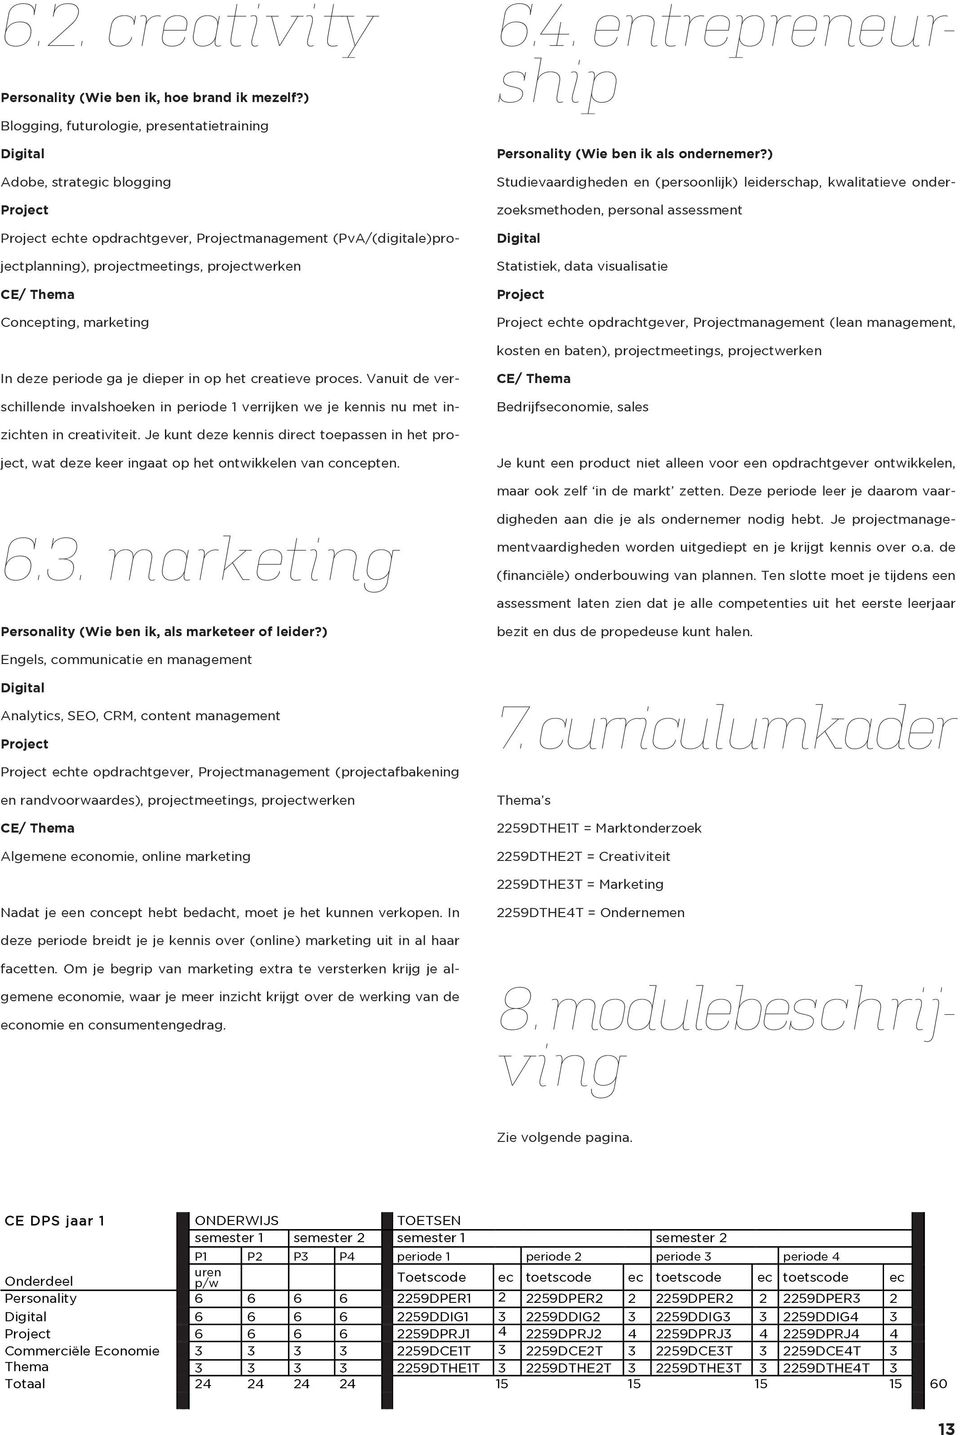 CE/ Thema Concepting, marketing 6.4. entrepreneurship Personality (Wie ben ik als ondernemer?